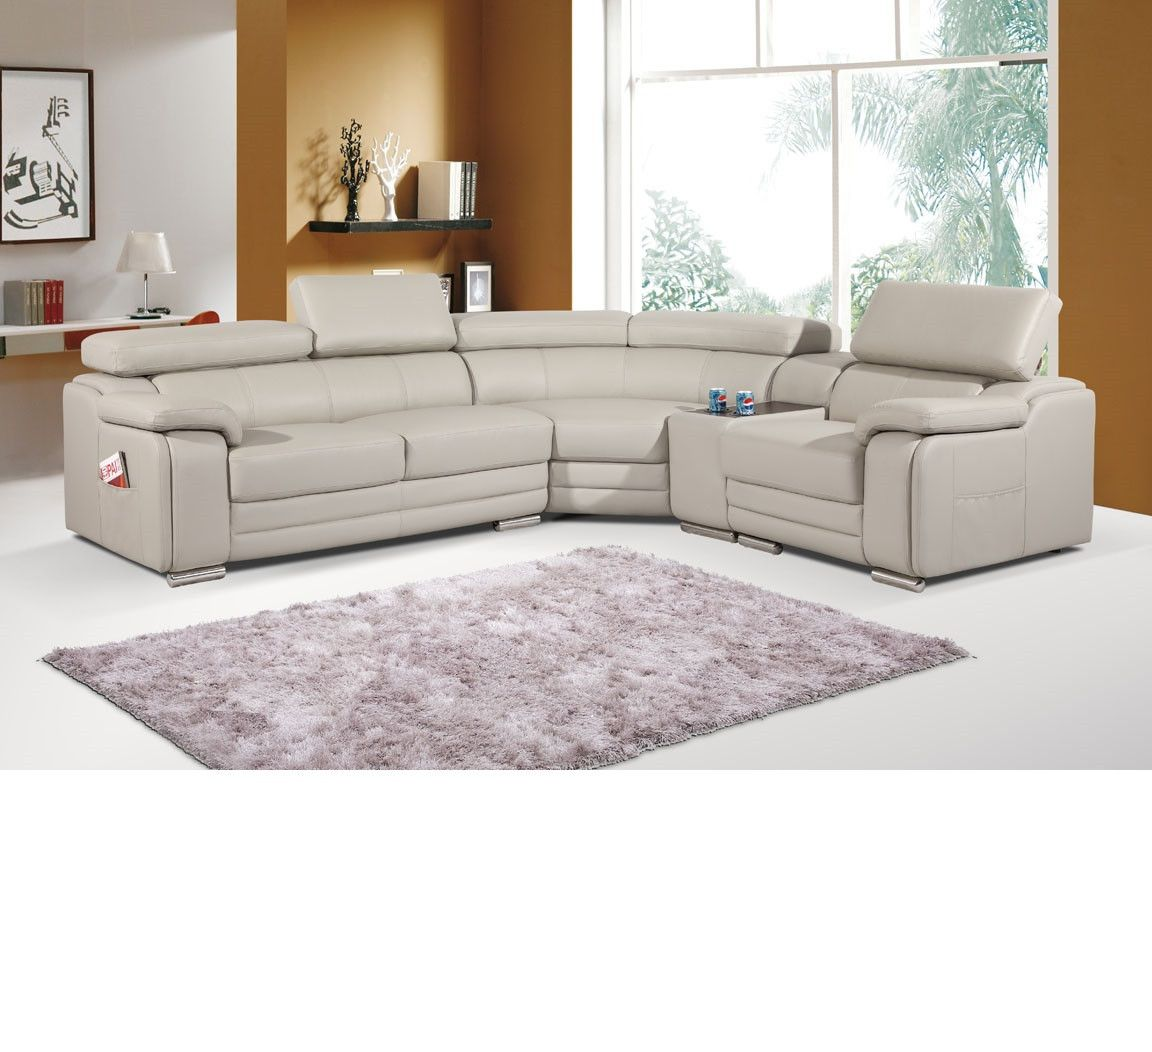 Beige Bonded Leather Sectional Leather Corner Sofa Grey Leather Corner Sofa Sectional Sofa